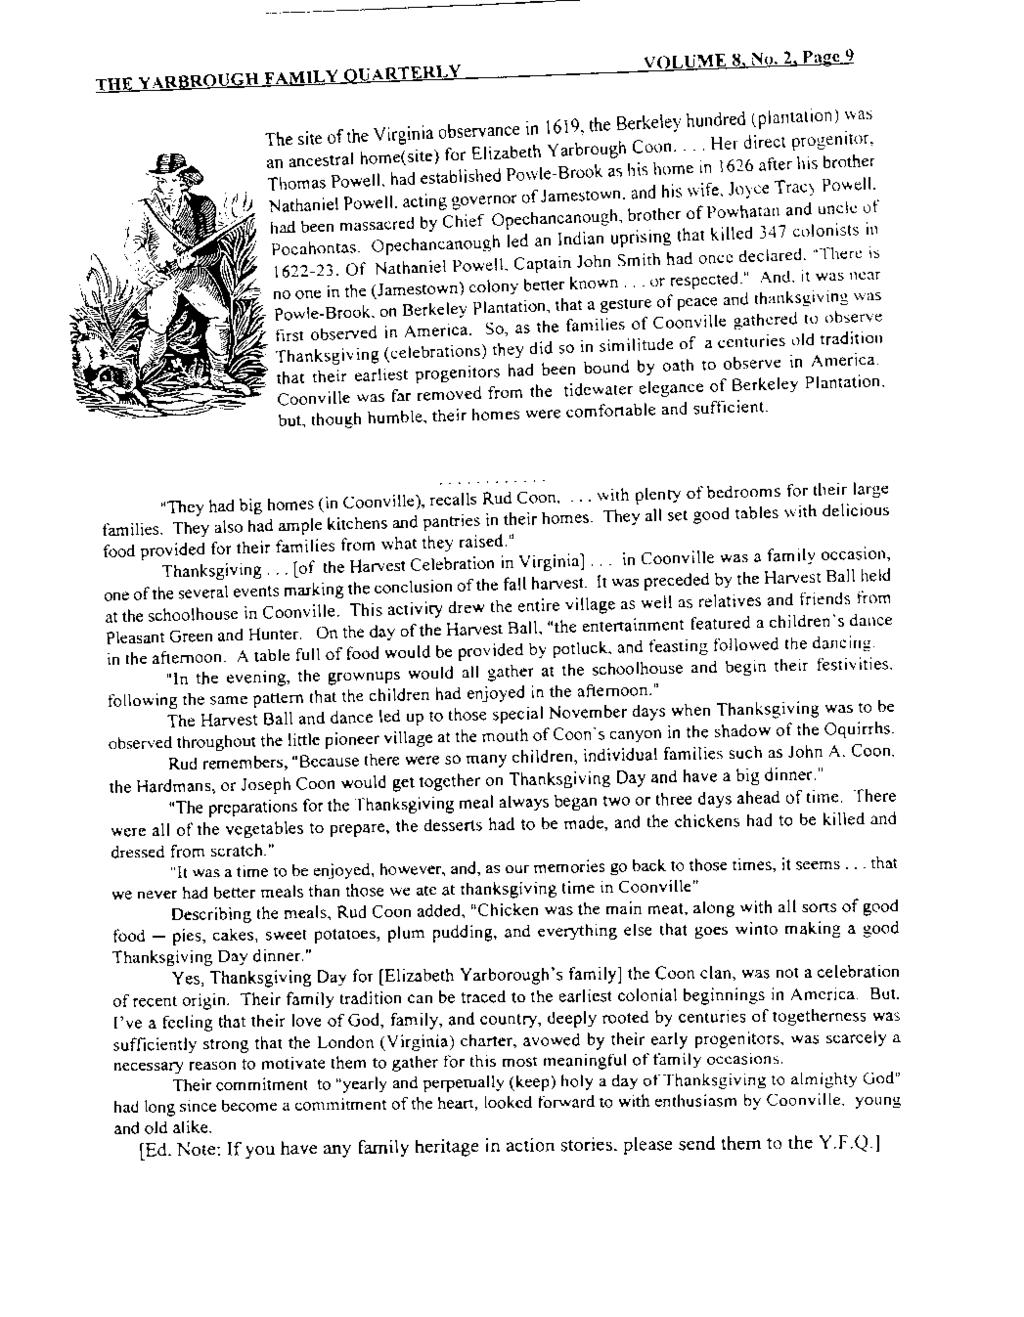 THE YARBROUGH FAMILY QUARTERLY VOLUME 8, No.2, Page 9 The site of the Virginia observance in 1619, the Berkeley hundred ~plantation) :vas an ancestral home(site) for Elizabeth Yarbrough Coon.